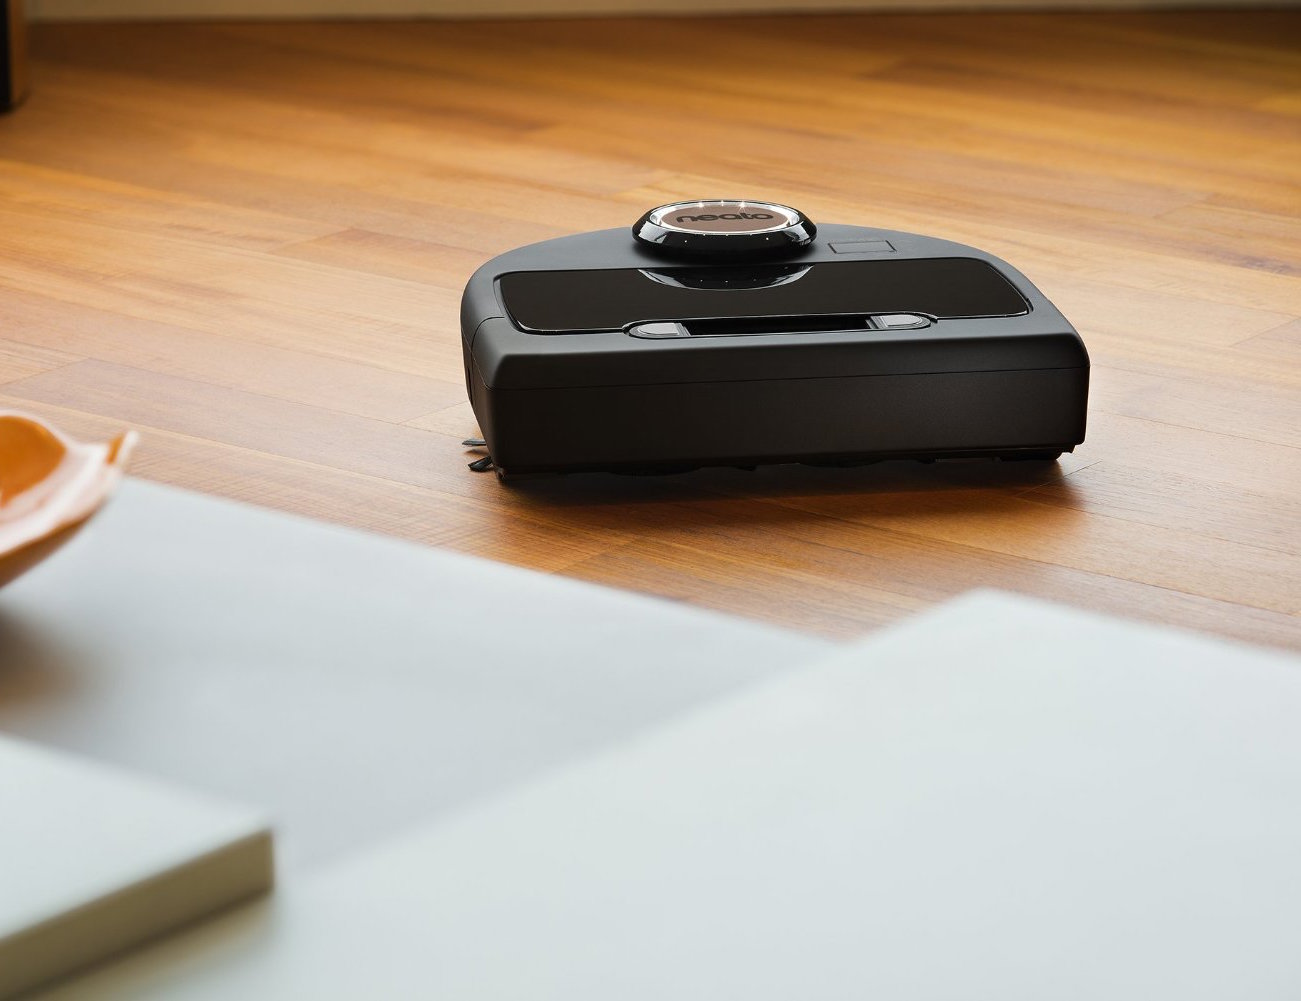 NEATO Botvac – The Wi-Fi Enabled Robot Vacuum